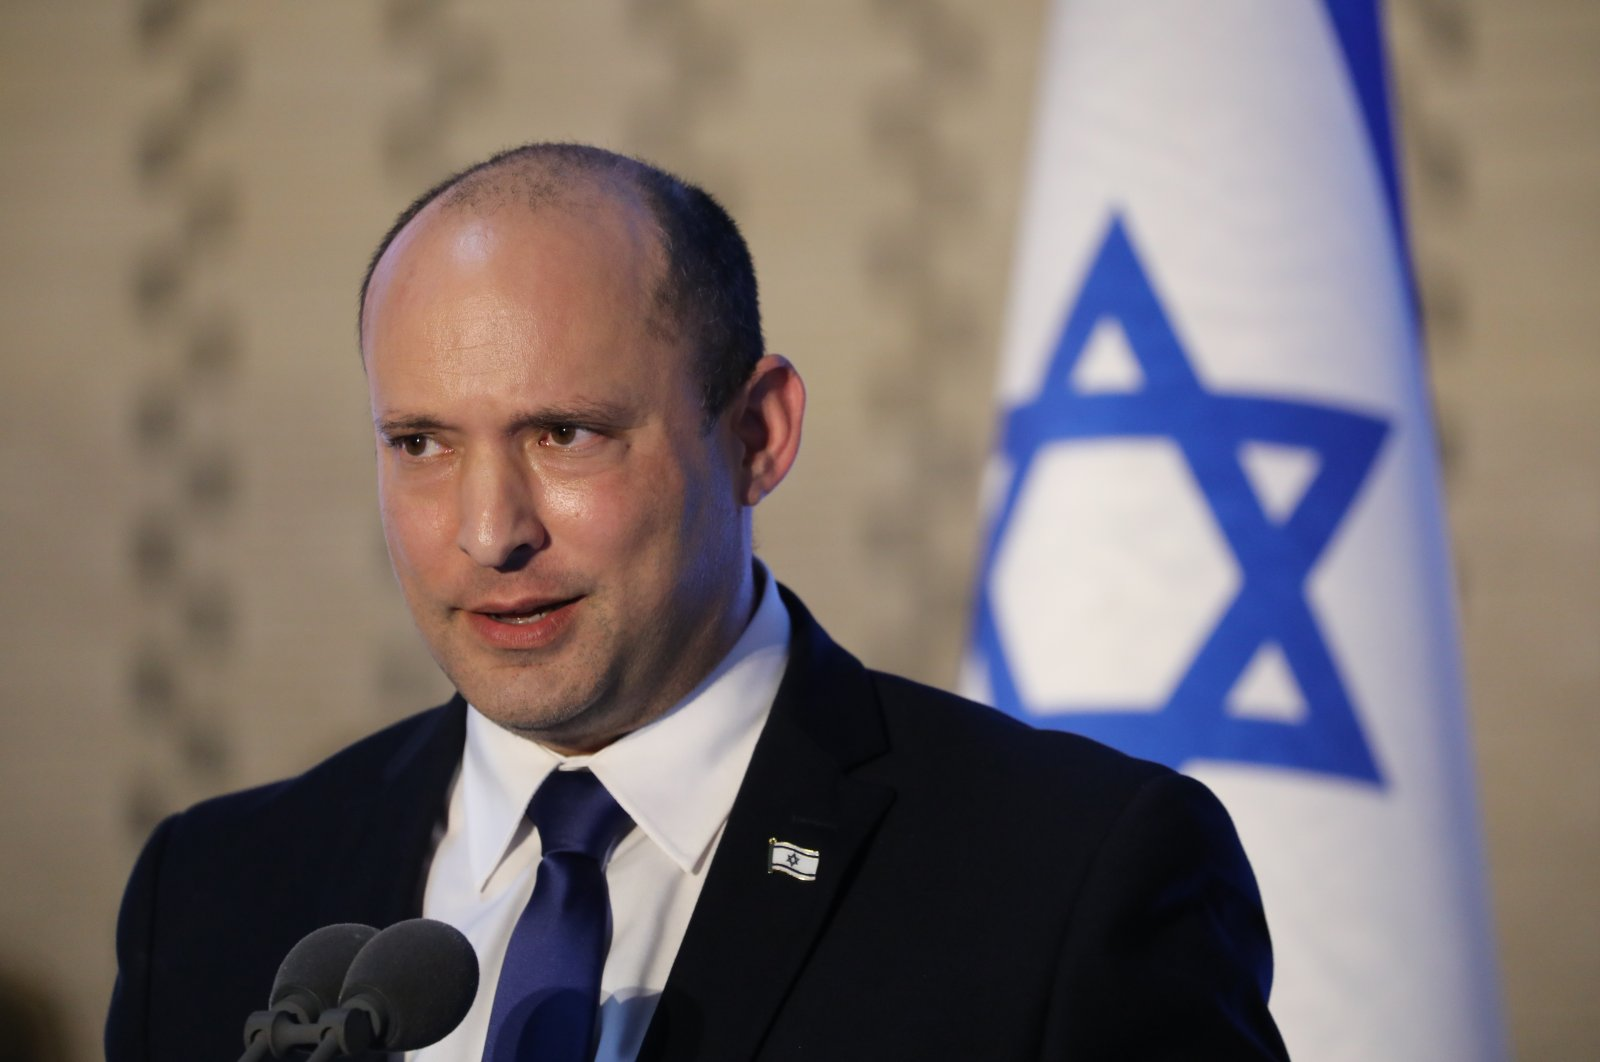 """Israeli Prime Minister Naftali Bennett speaks during a memorial ceremony for Israeli soldiers who fell in battle in the 2014 Gaza War during """"Operation Protective Edge,"""" at the Hall of Remembrance of Mount Herzl Military Cemetery in West Jerusalem, Israel, June 20, 2021. (EPA Photo)"""